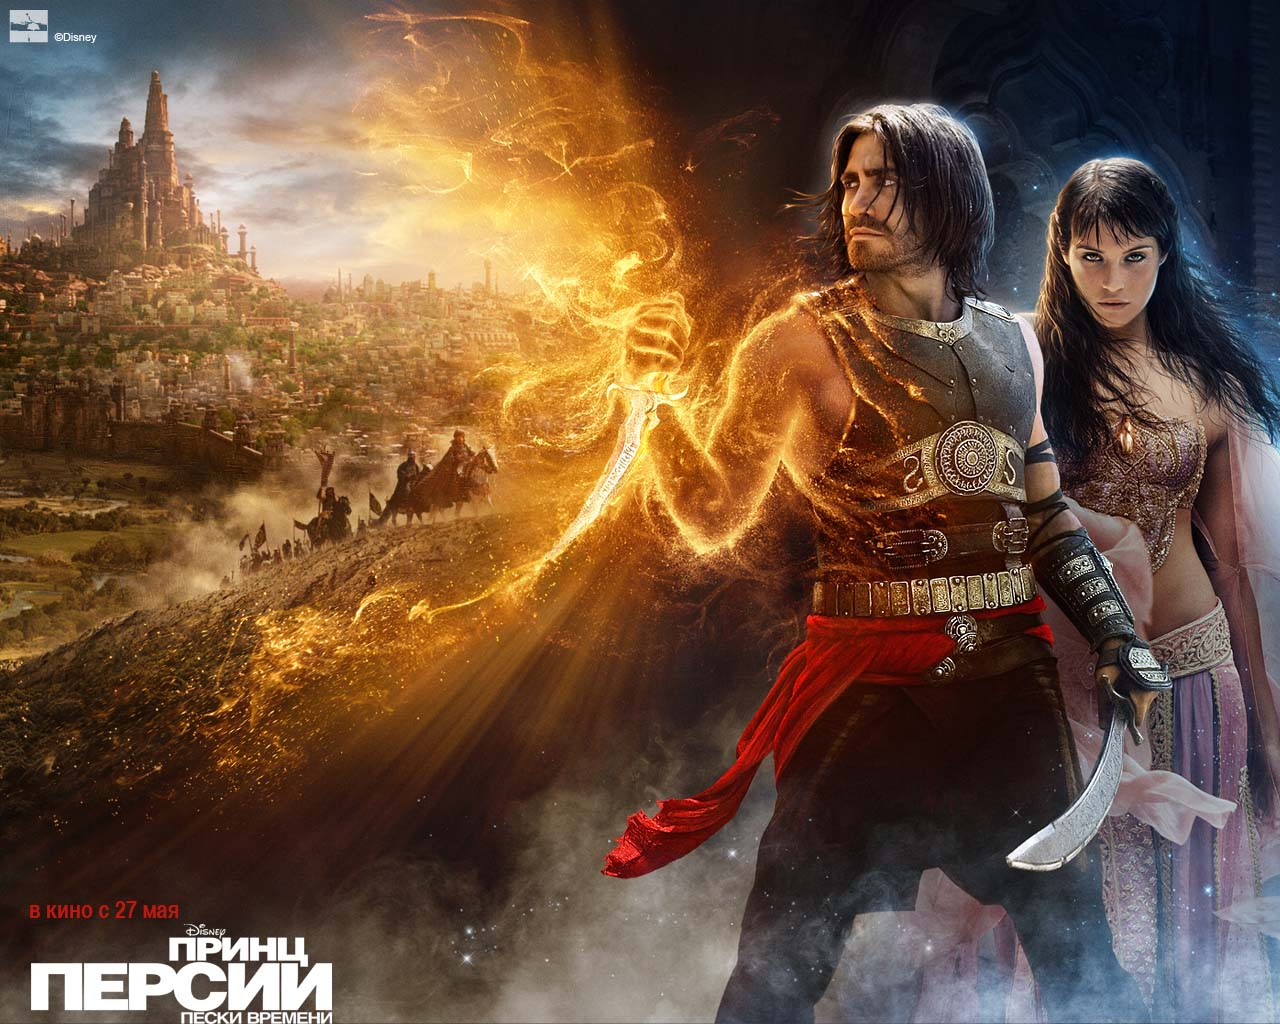 Prince of persia famous hentai pics erotic images